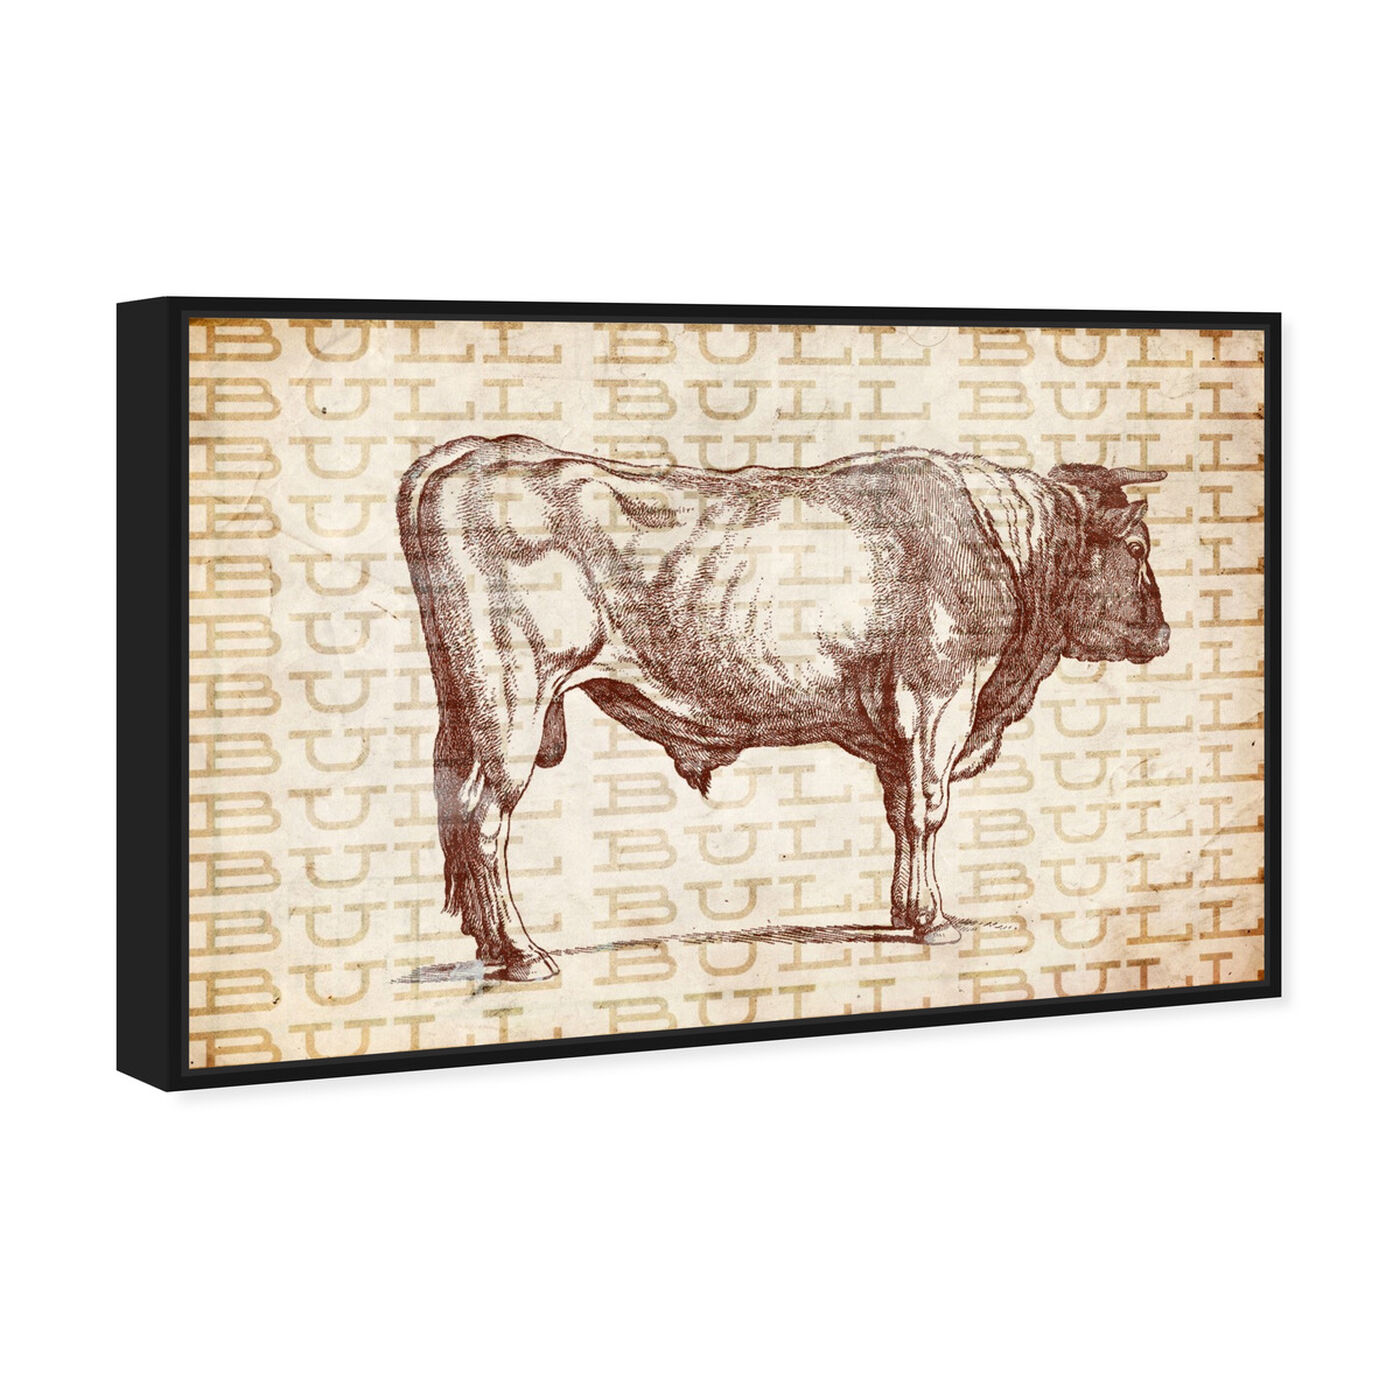 Angled view of Bull featuring animals and farm animals art.